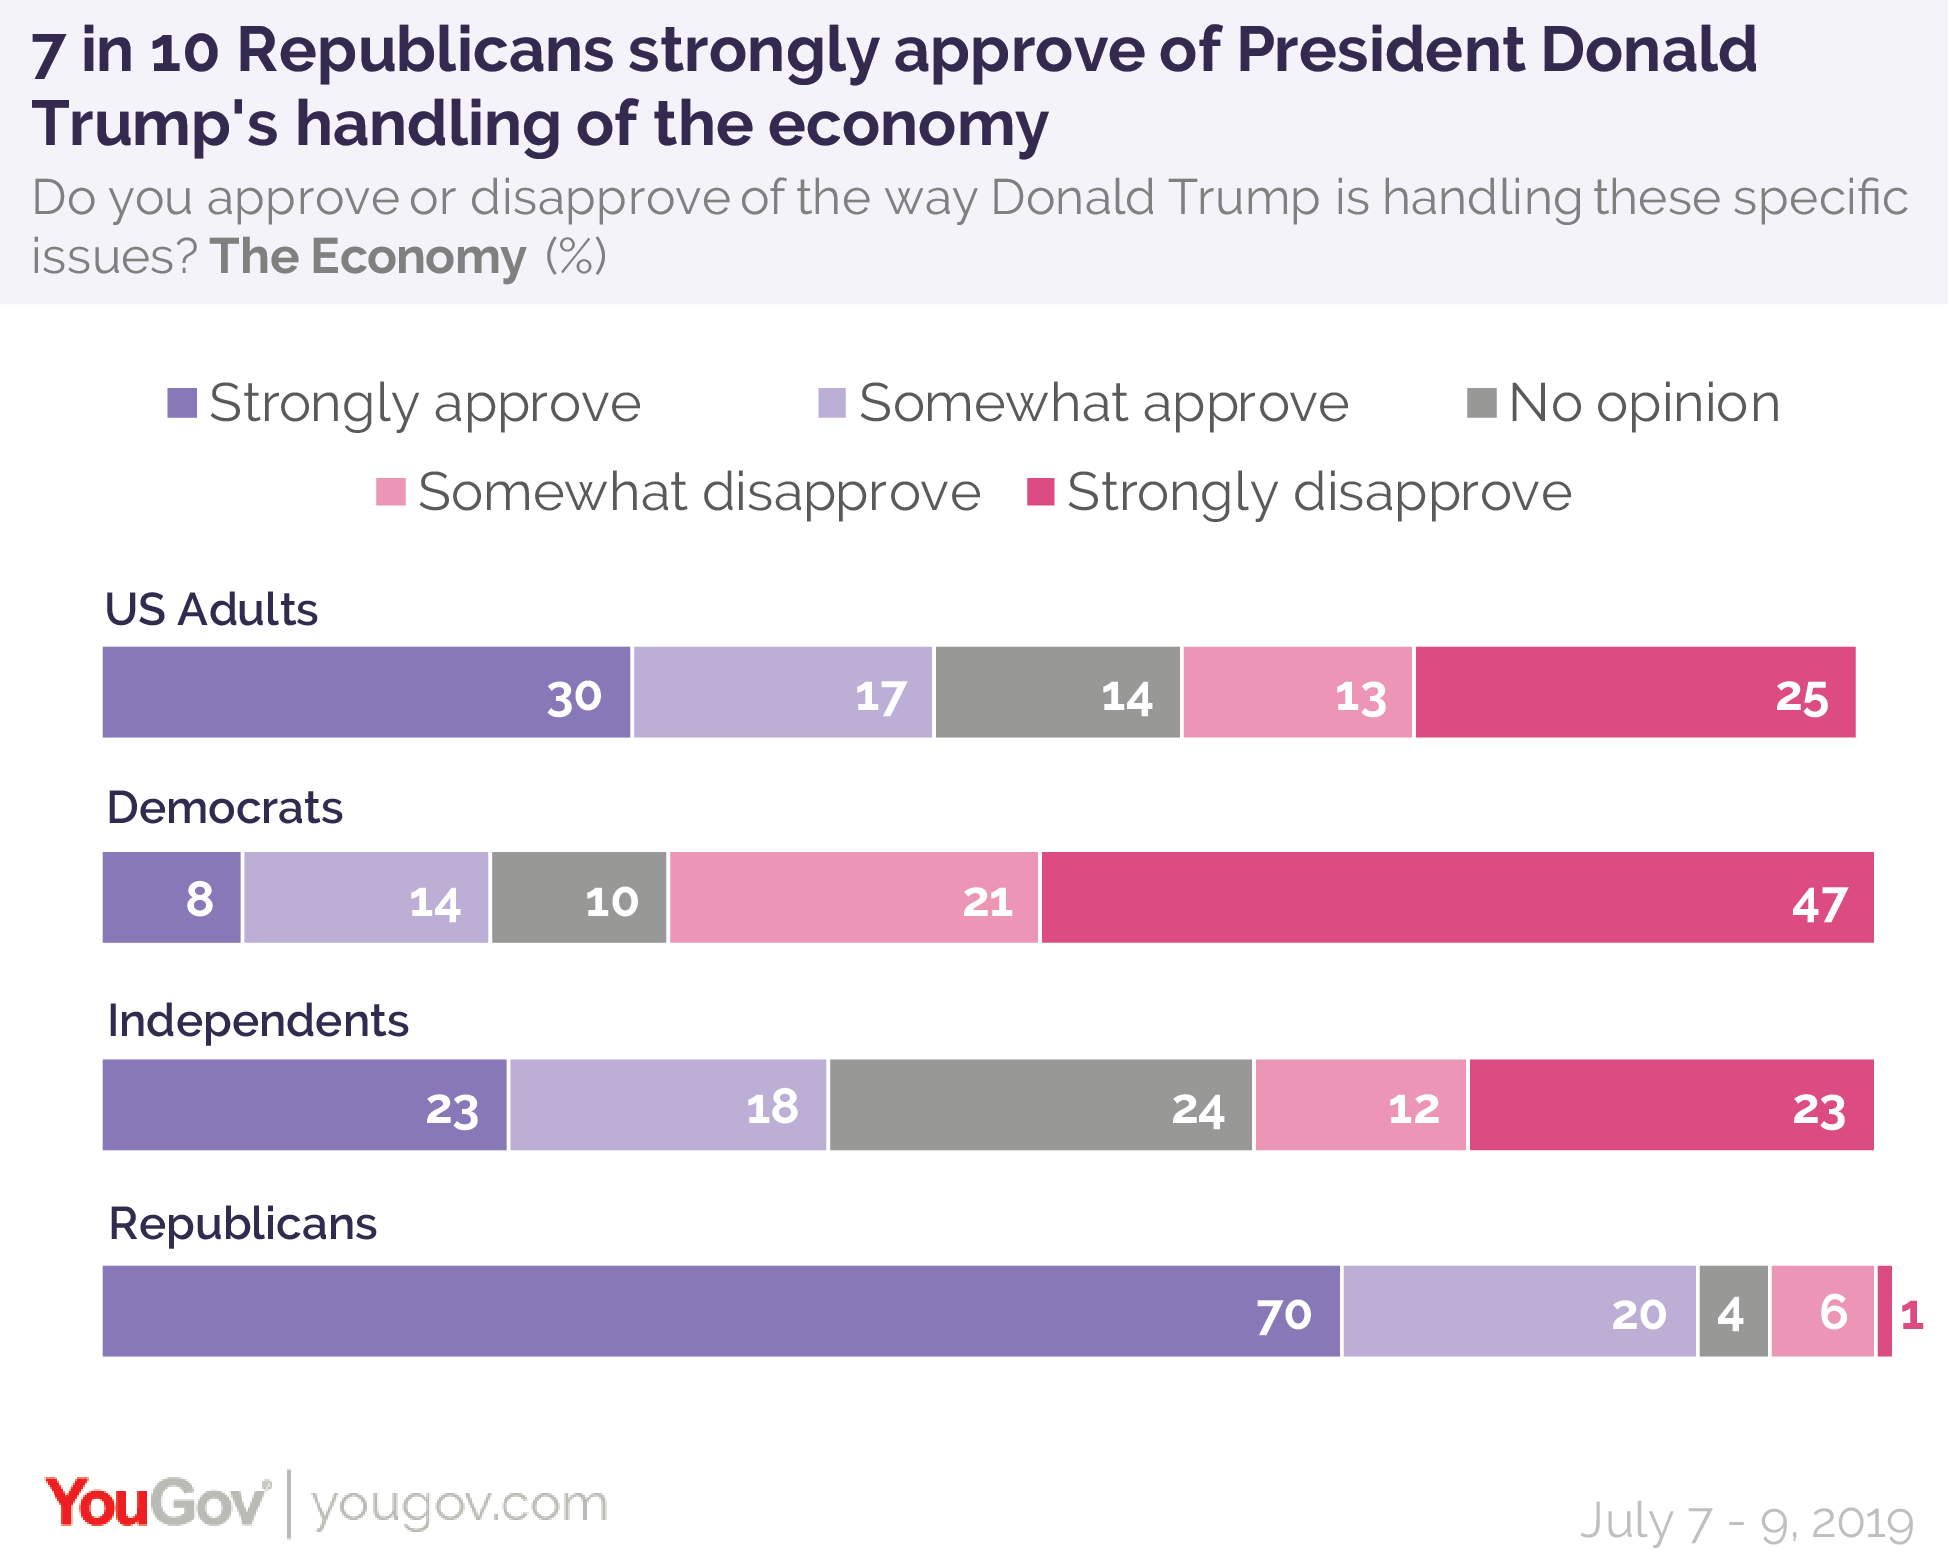 7 in 10 Republicans strongly approve of President Donald Trump's handling of the economy